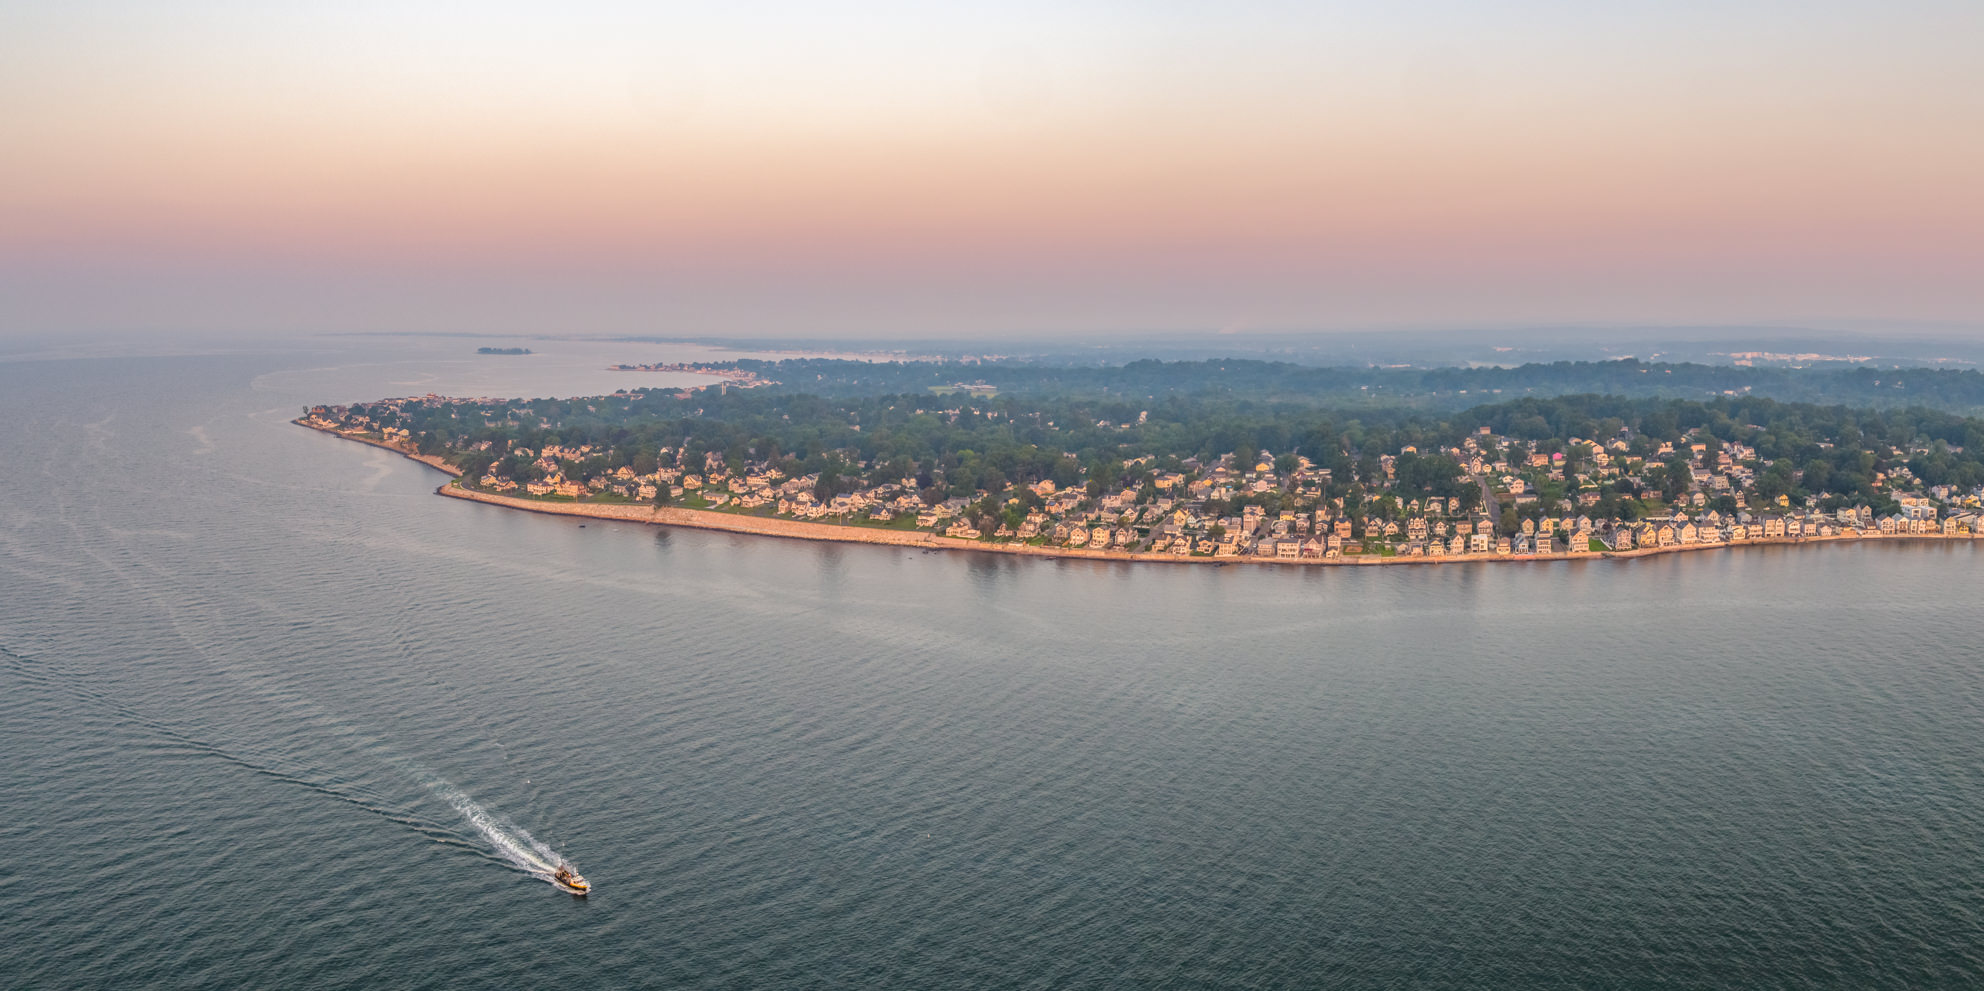 Drone photography and video in Milford CT, Photoflight Aerial Media